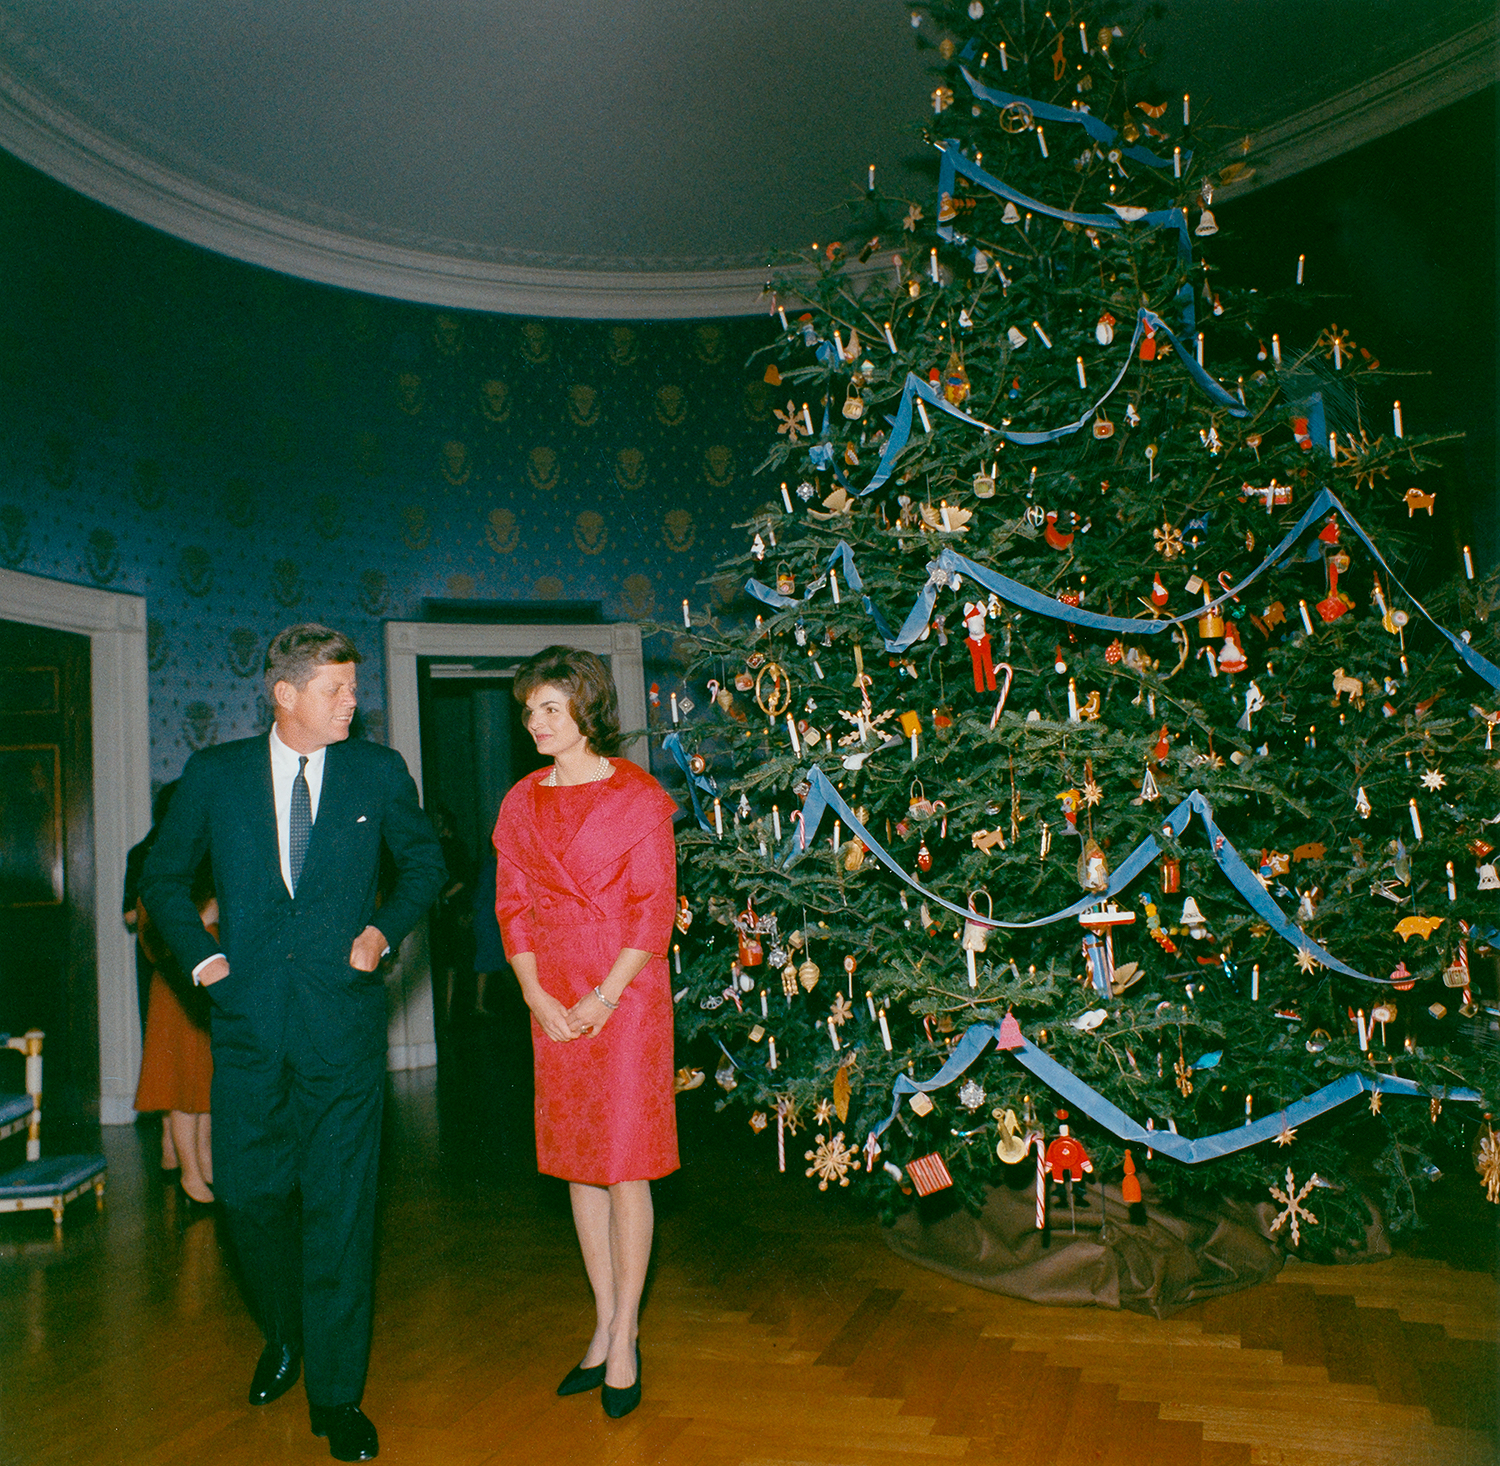 President John F. Kennedy and First Lady Jacqueline Kennedy in front of the Blue Room Christmas tree